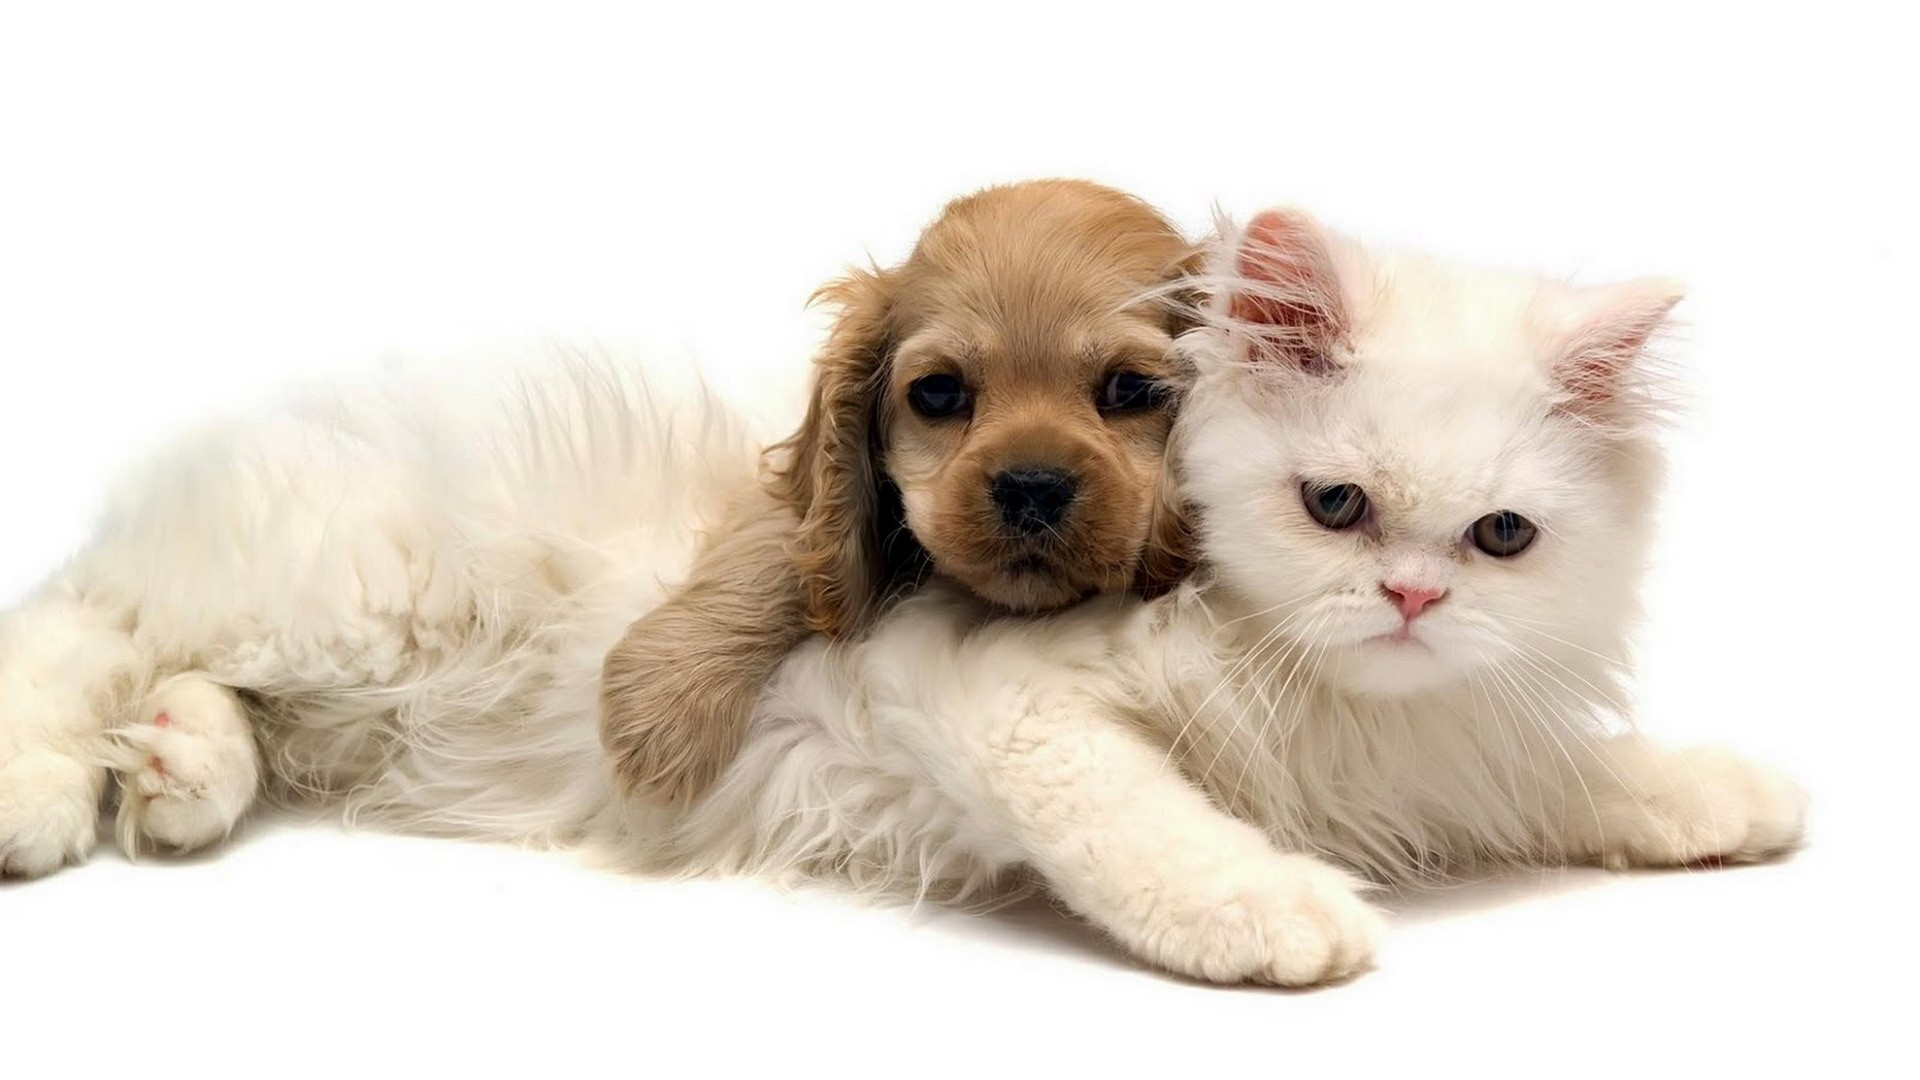 Cats Dogs Wallpaper 1920x1080 Cats Dogs 1920x1080